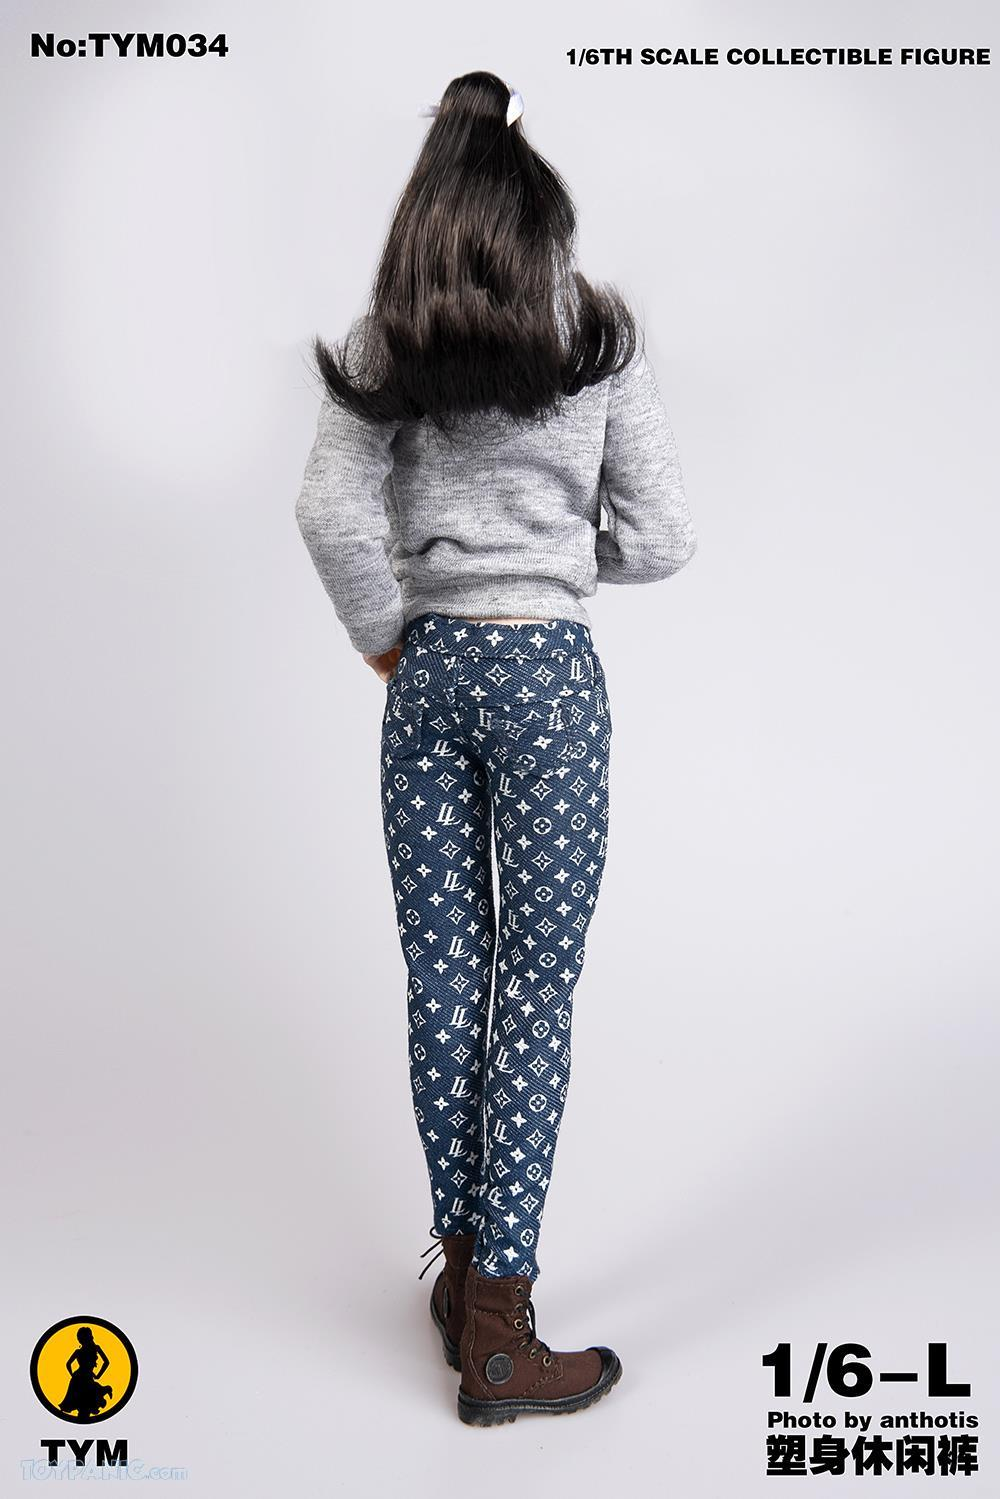 clothes - NEW PRODUCT: 1/6 LL Trendy printed jeans  From Technic Toys  Code: TYM034 61201915